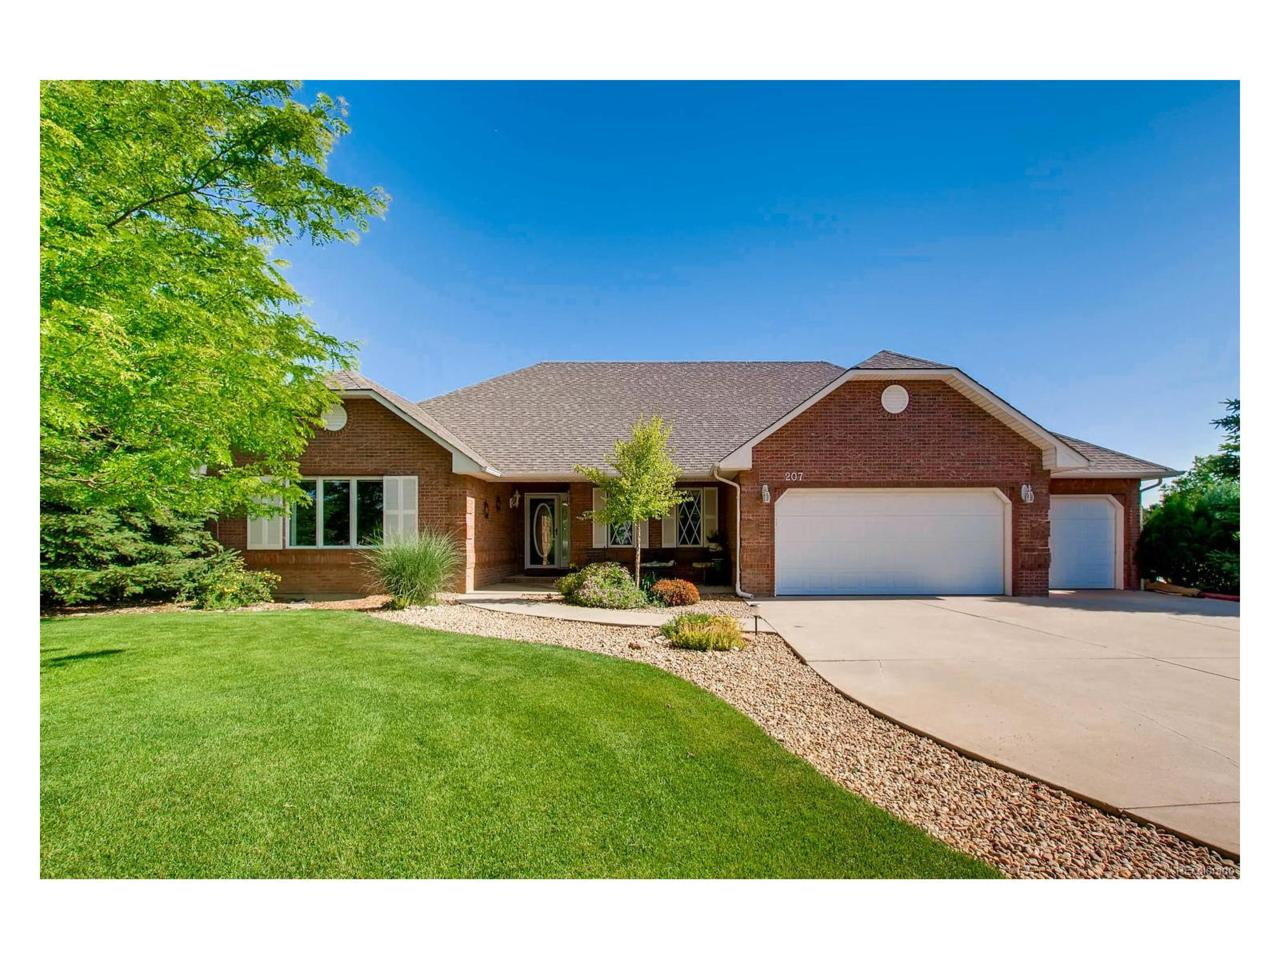 207 Grand View Circle, Mead, CO 80542 (MLS #5786473) :: 8z Real Estate